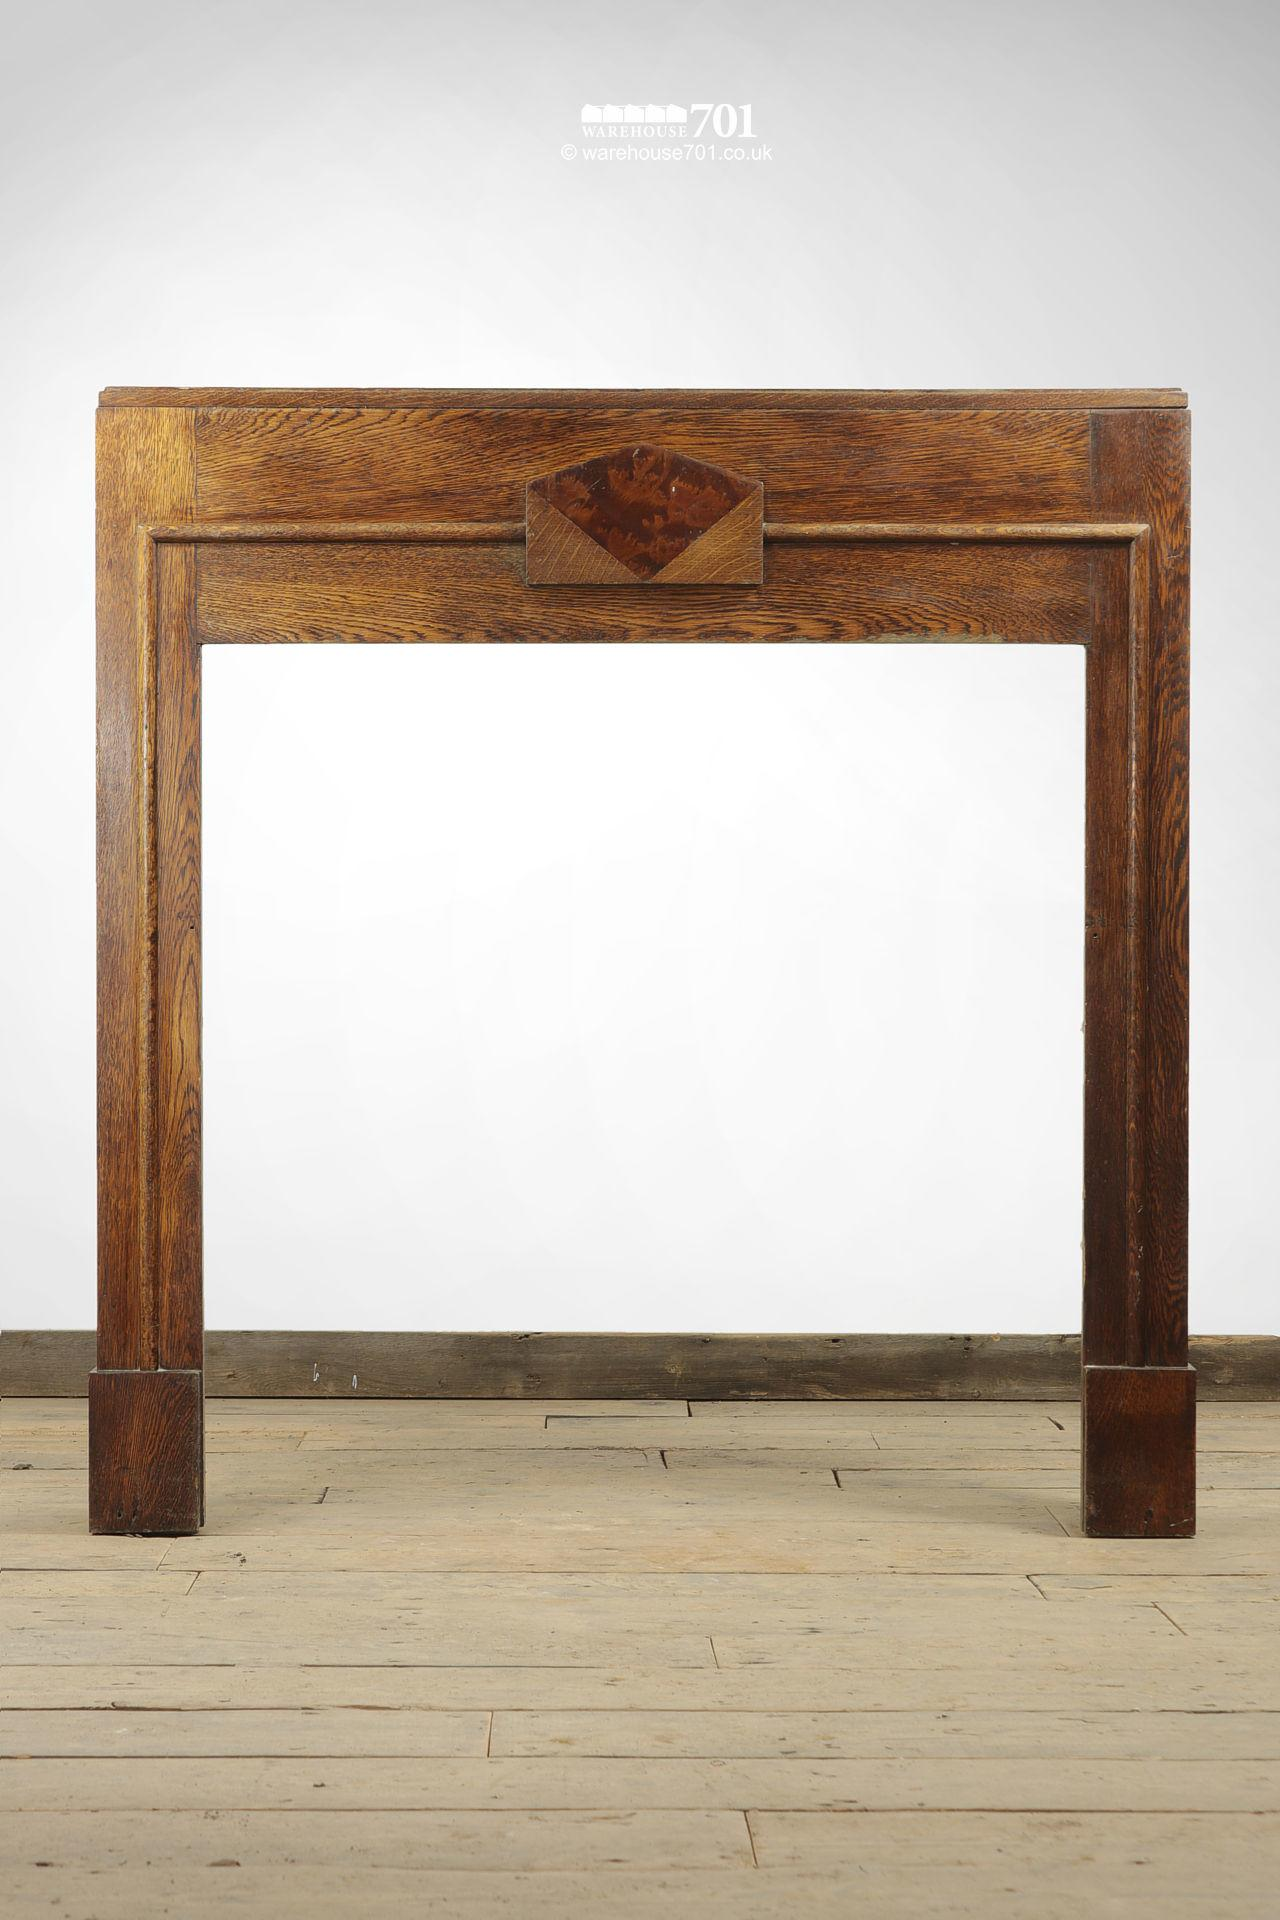 Vintage Art Deco Solid Oak Fire Surround with Mock Tortoiseshell Panel #3